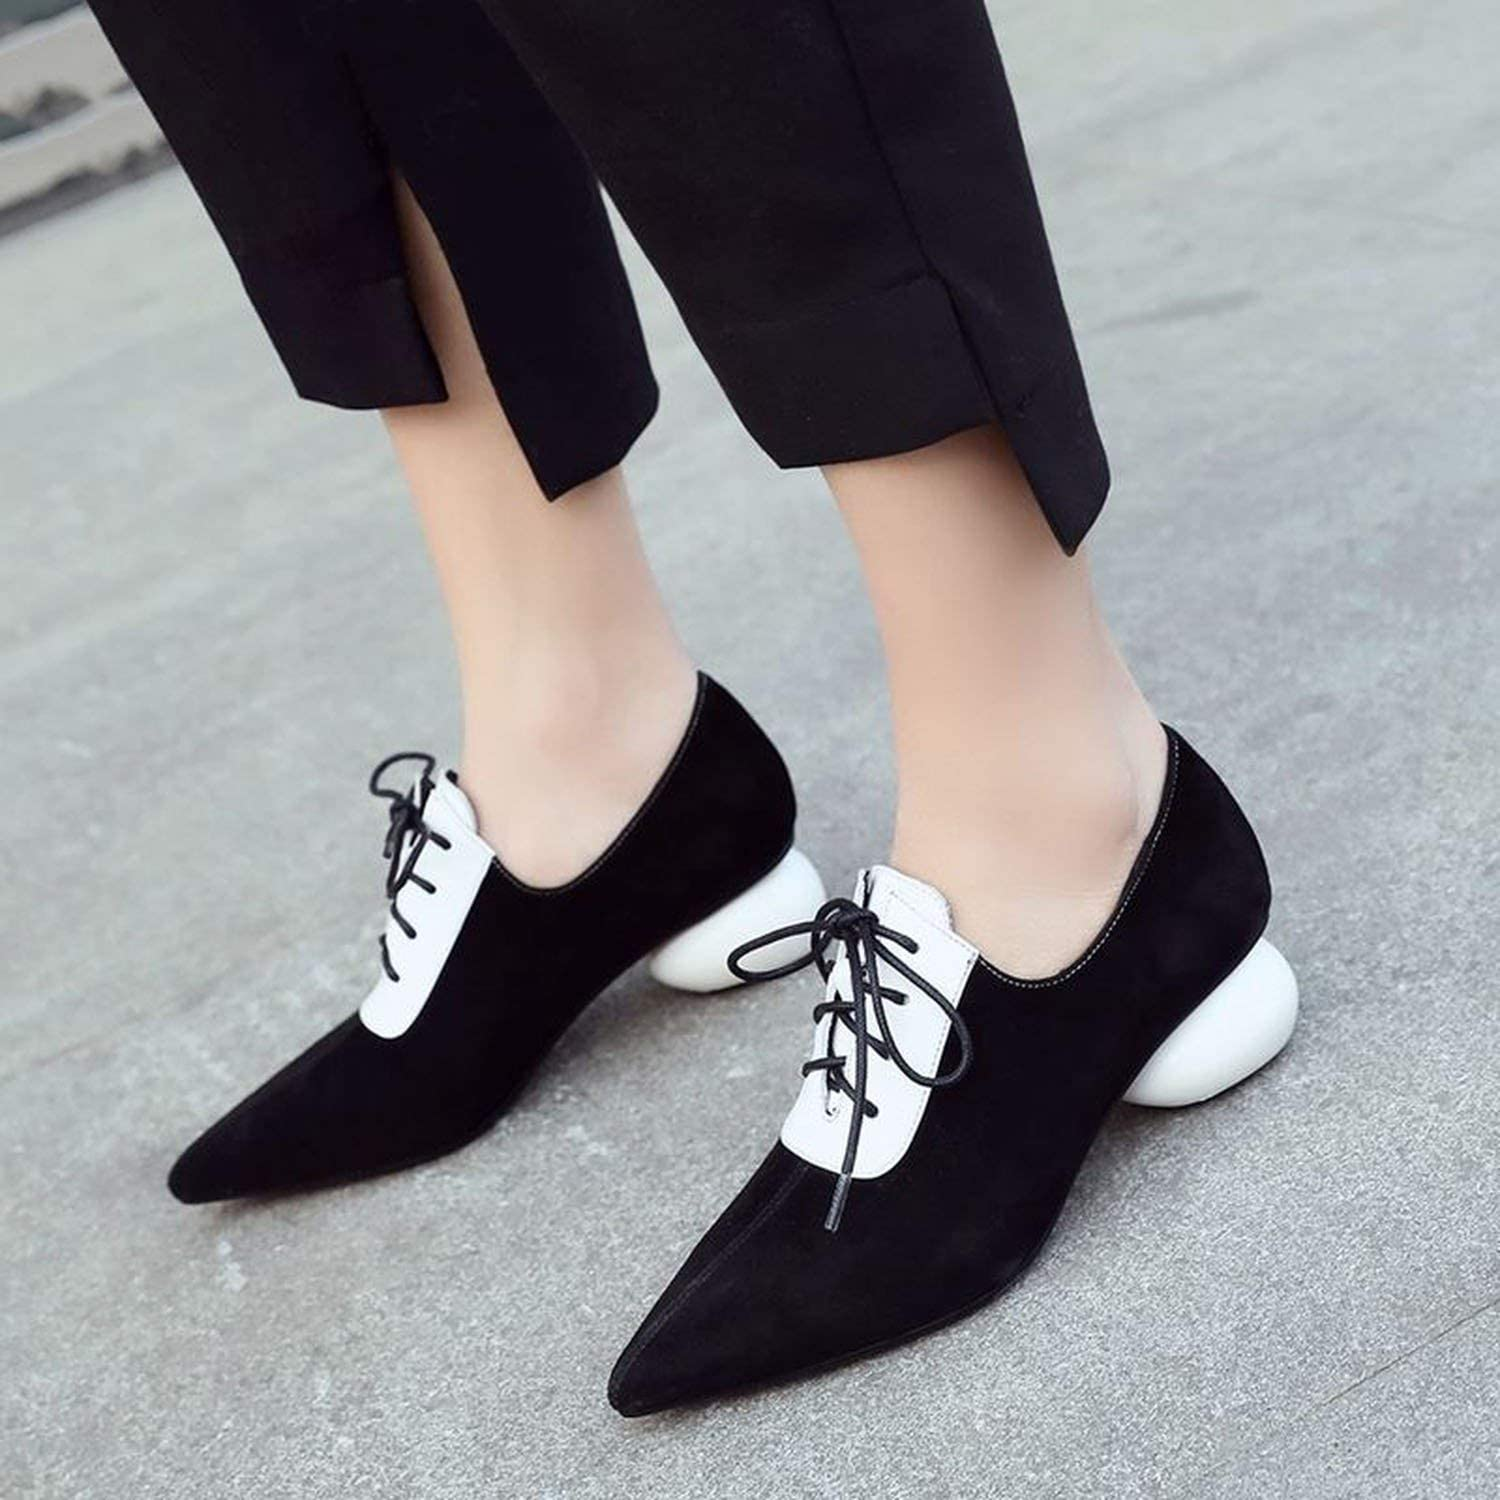 High Heels Leather Thick Heel Shoes High Heel Shoes British Style Women Heels Girls Shoes